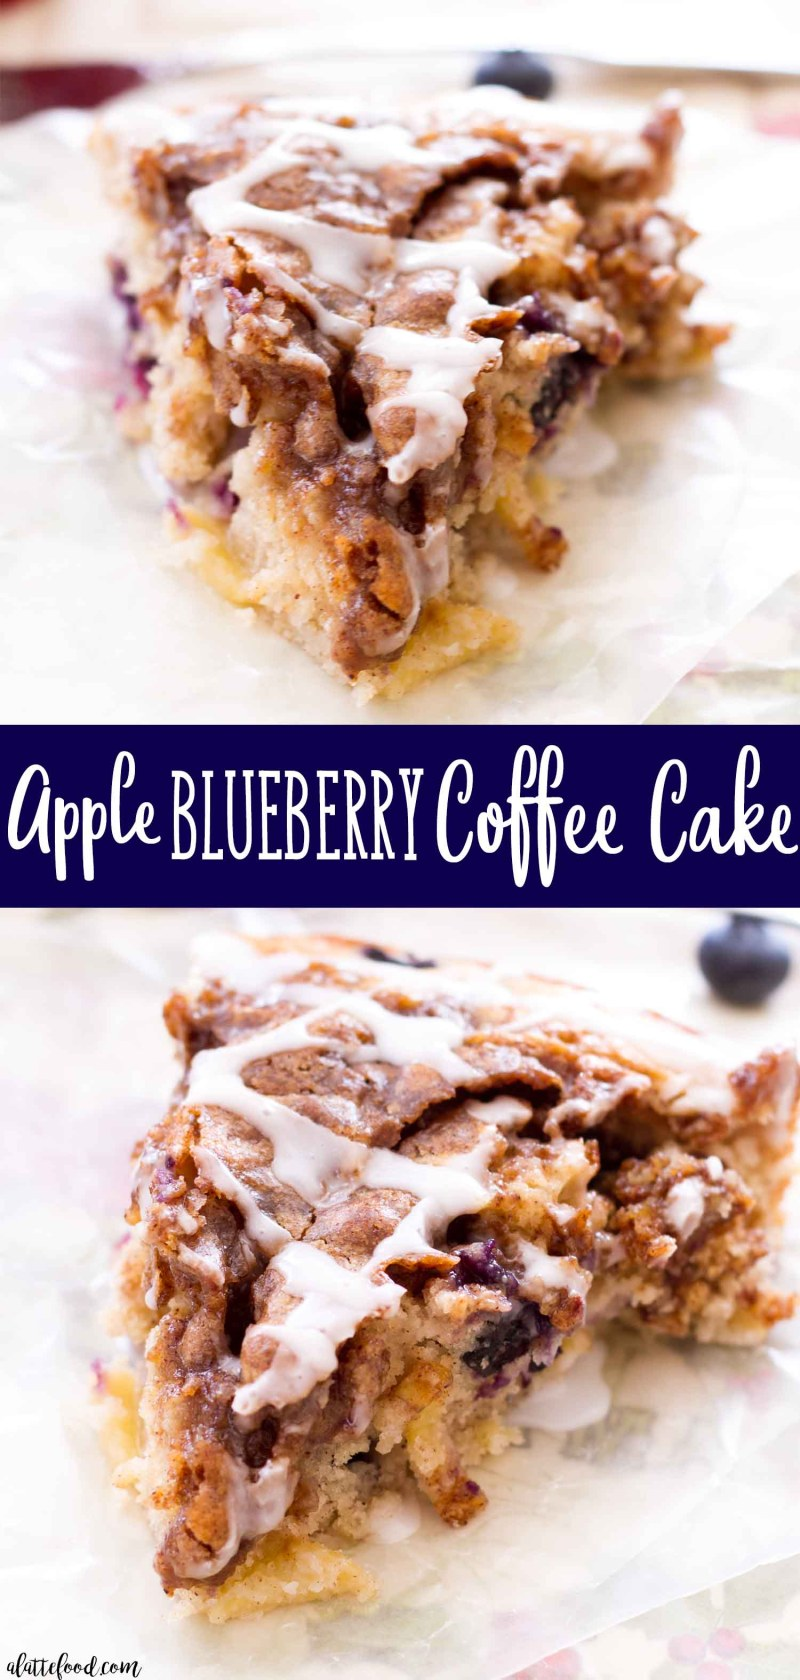 Homemade Apple Blueberry Coffee Cake with a Brown Sugar Topping